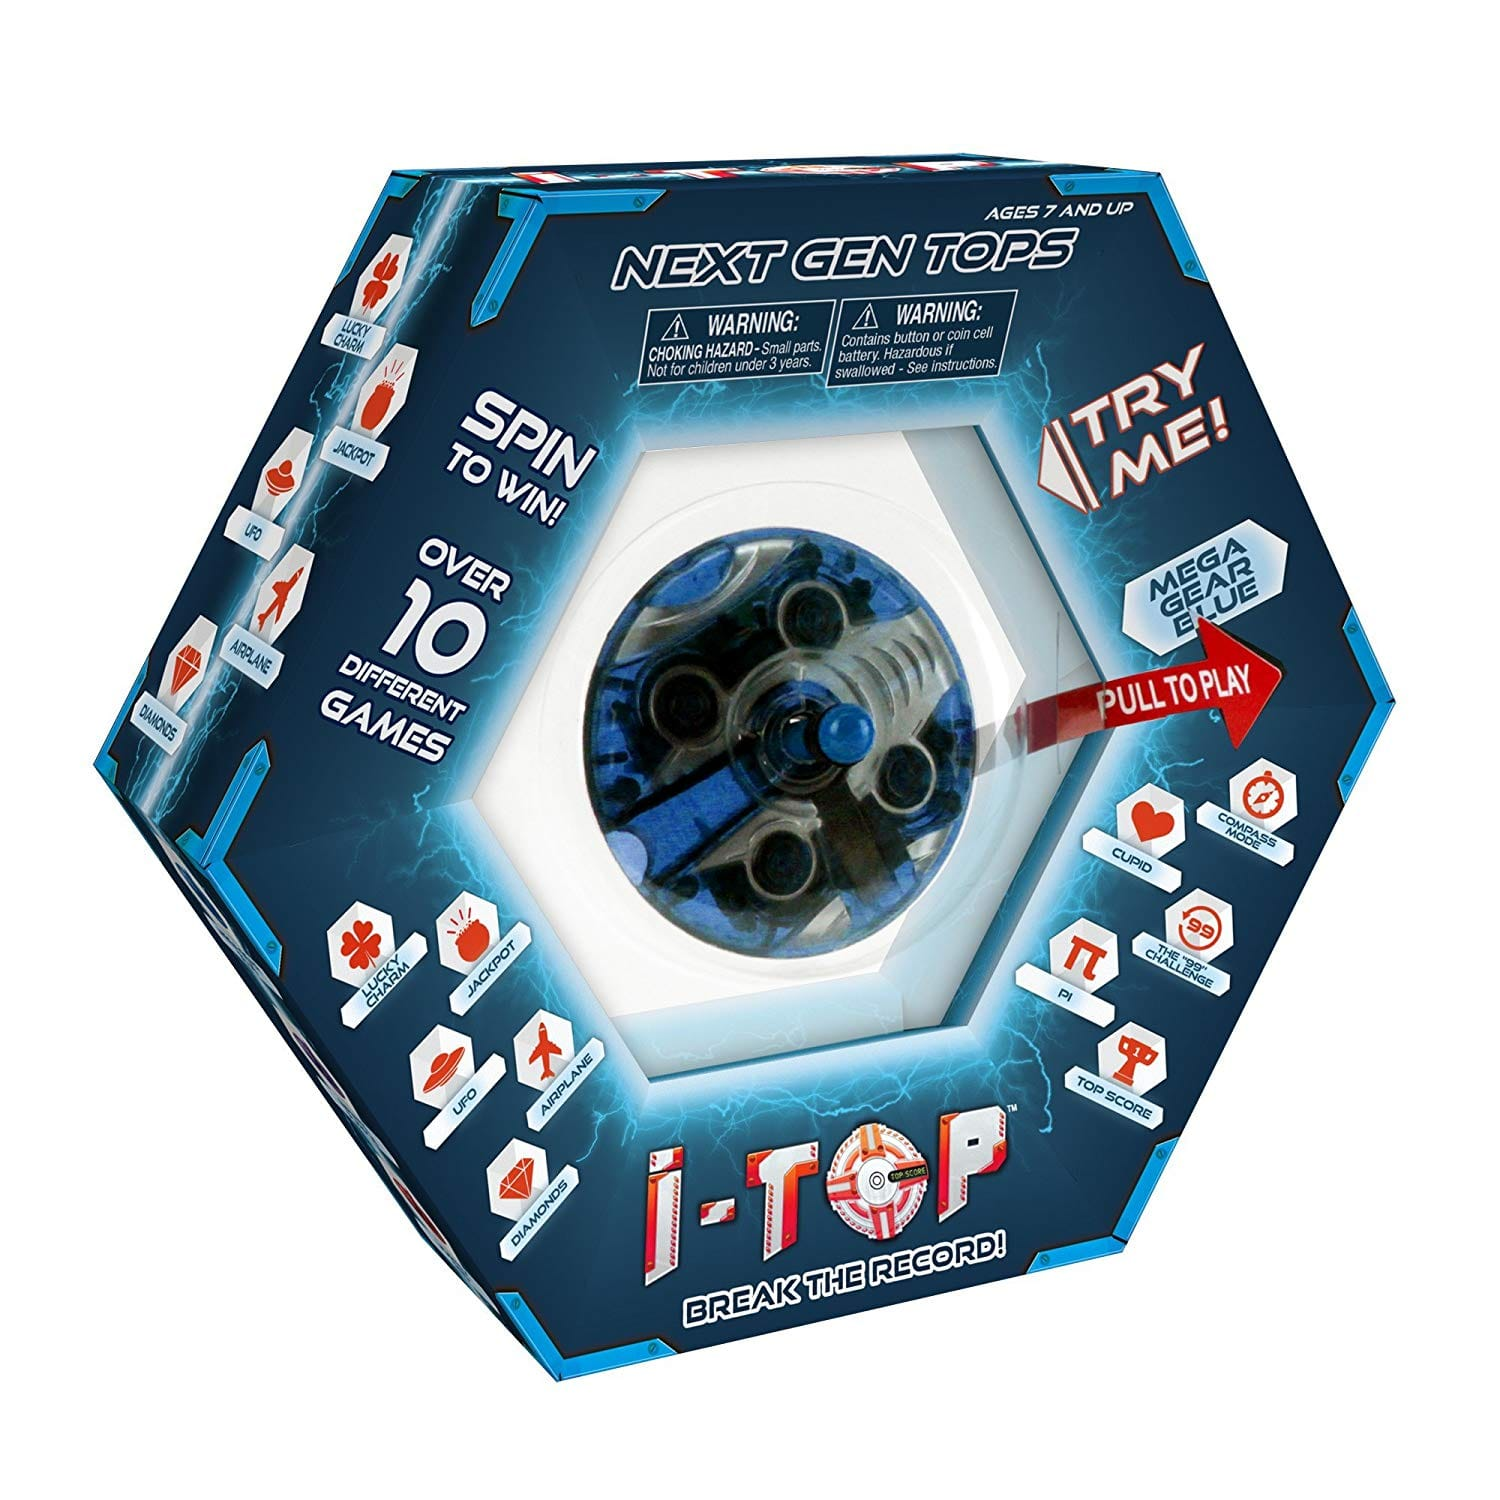 I-Top Spinner Game, Mega Gear Blue $5.20 shipped with Amazon Prime